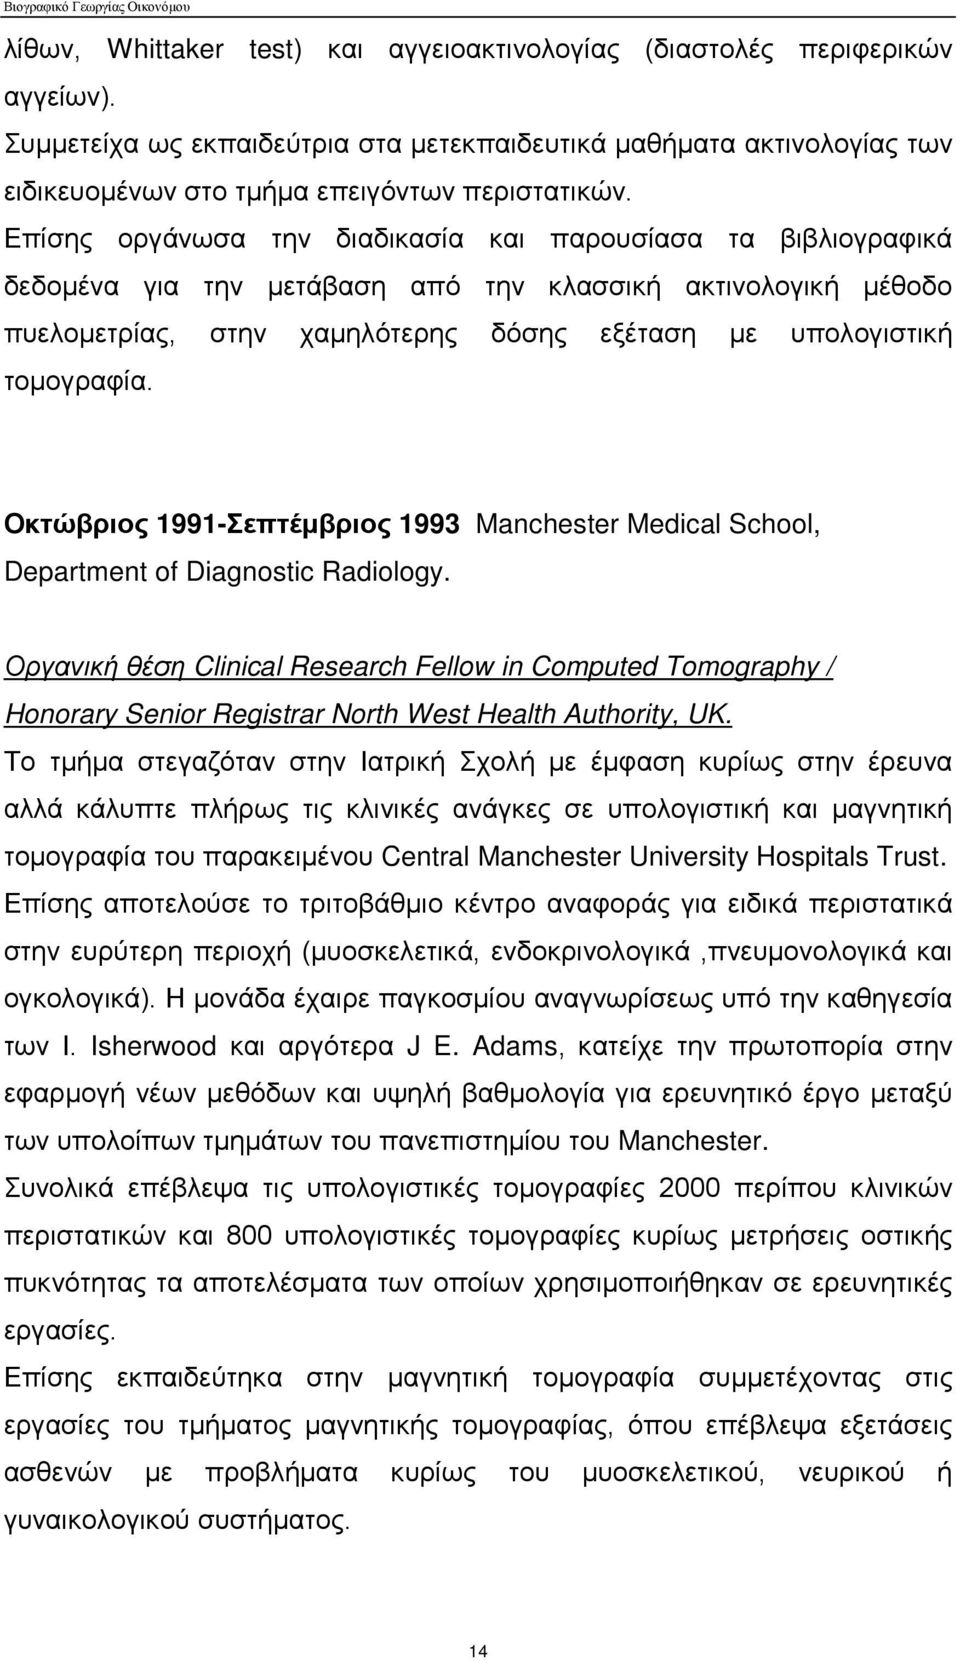 Οκτώβριος 1991-Σεπτέμβριος 1993 Manchester Medical School, Department of Diagnostic Radiology.